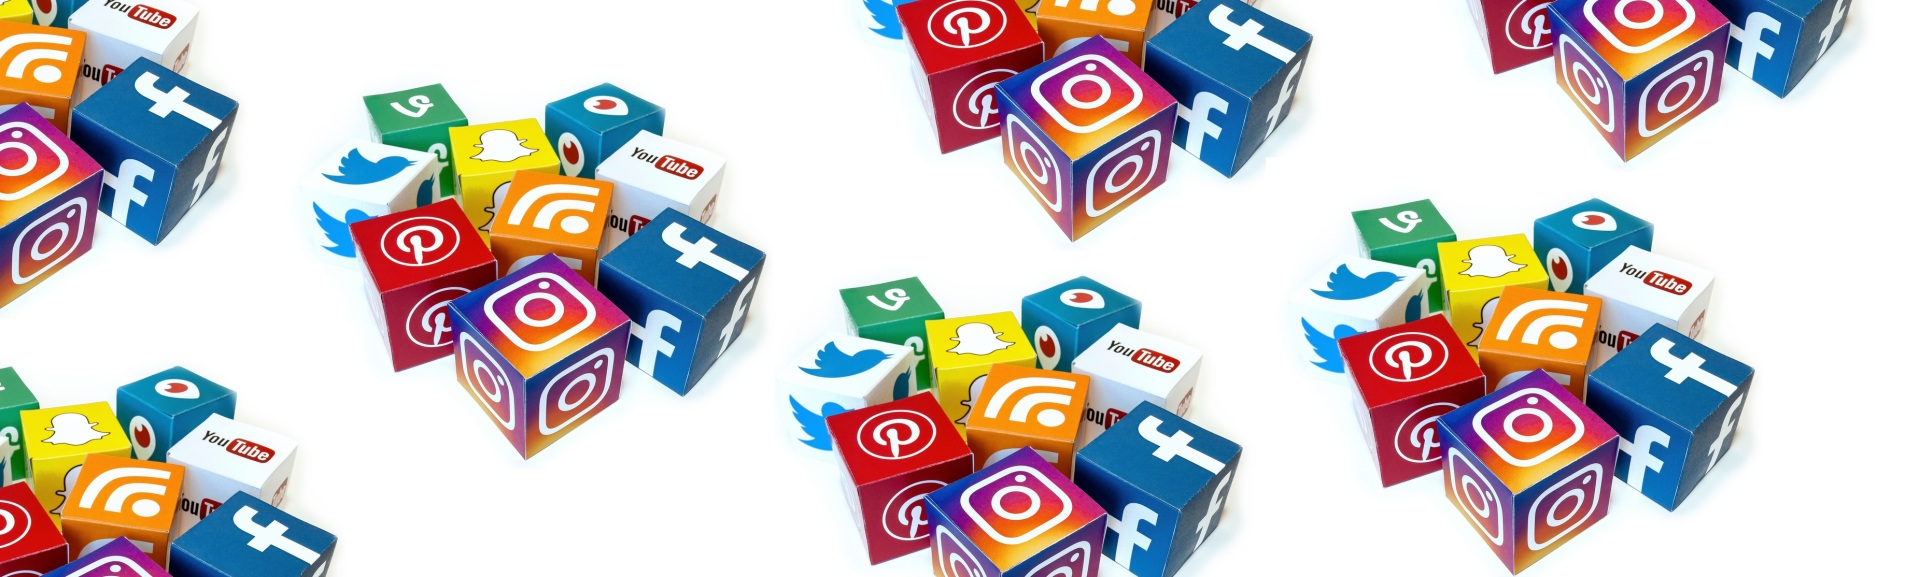 What's your favorite social media network?